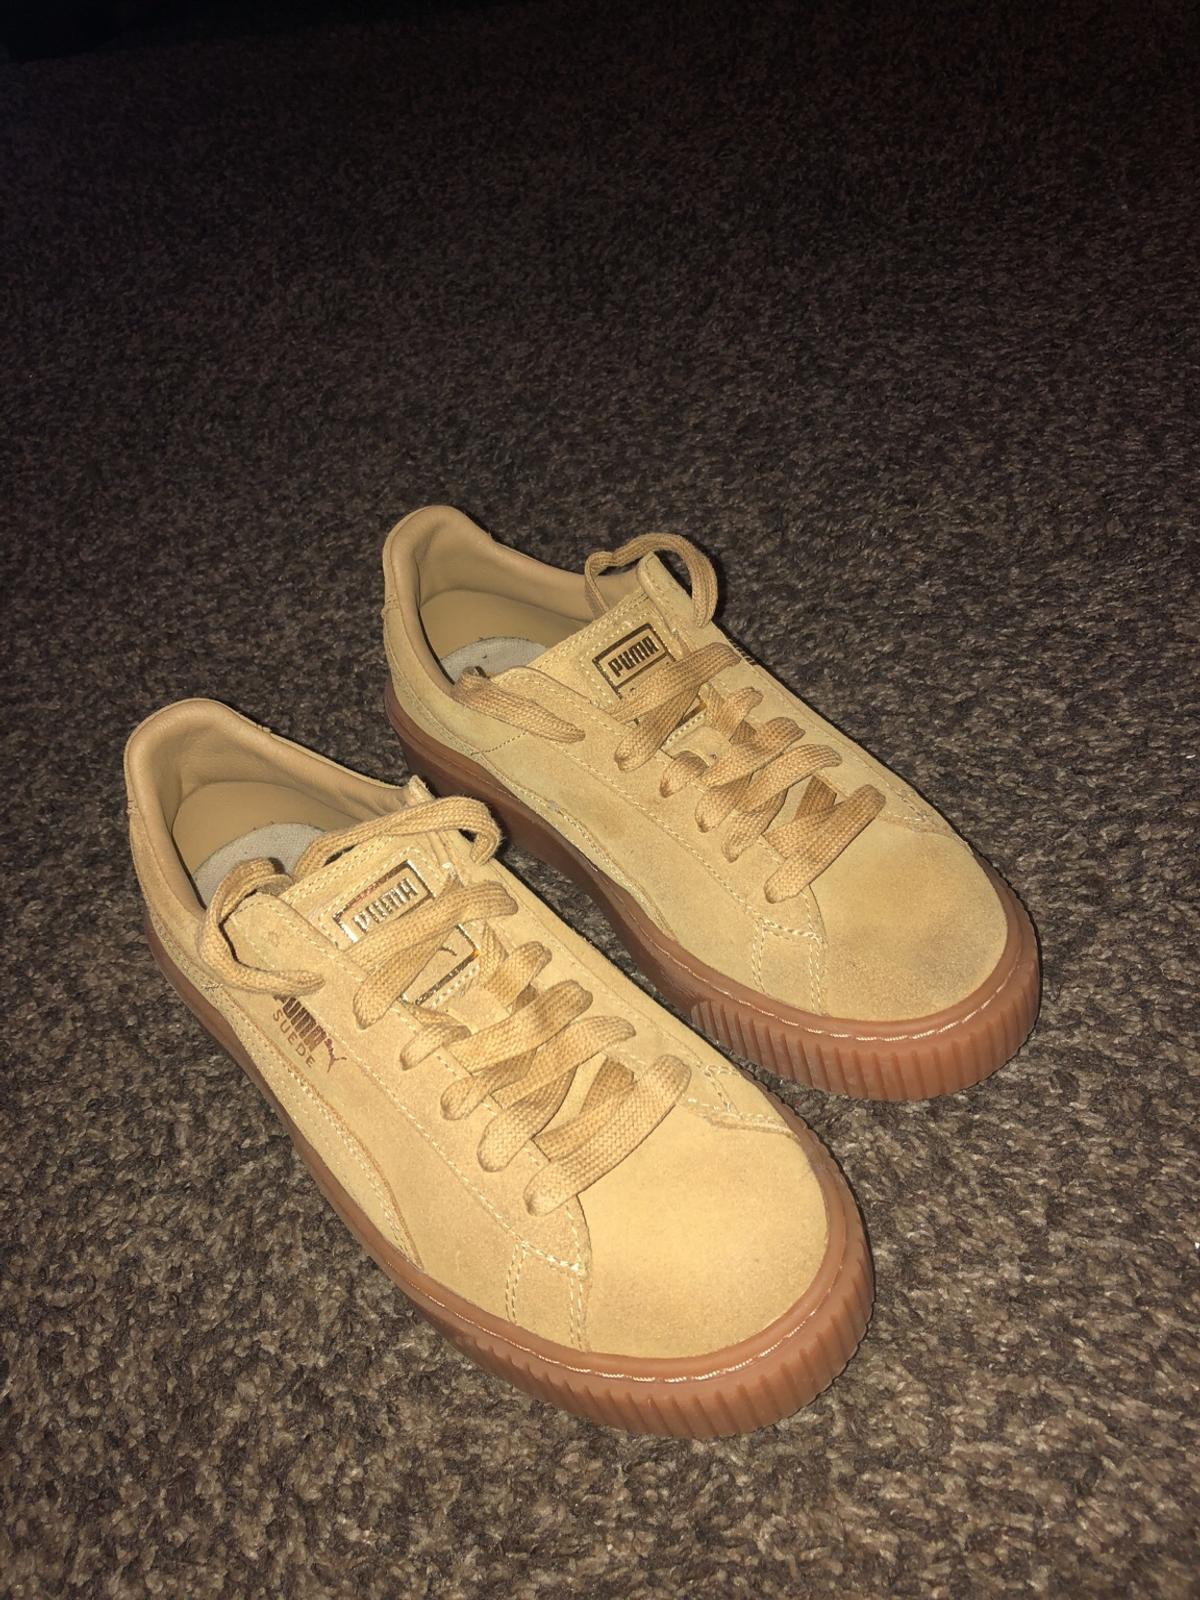 competitive price 5eff4 f5bc3 Puma Sand Creepers